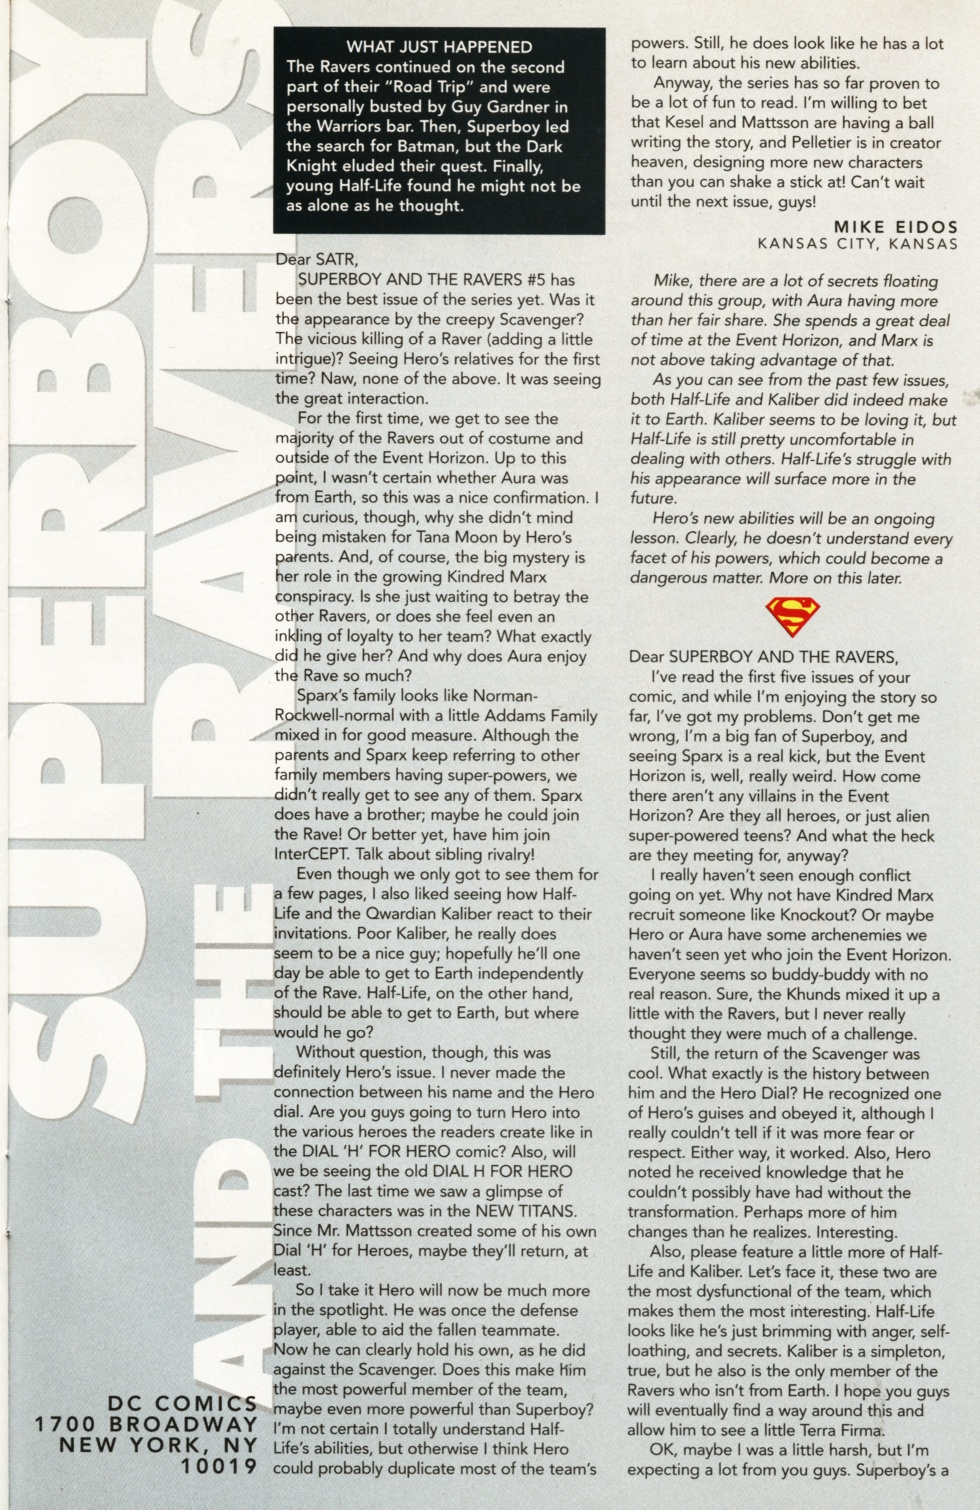 Read online Superboy & The Ravers comic -  Issue #9 - 24